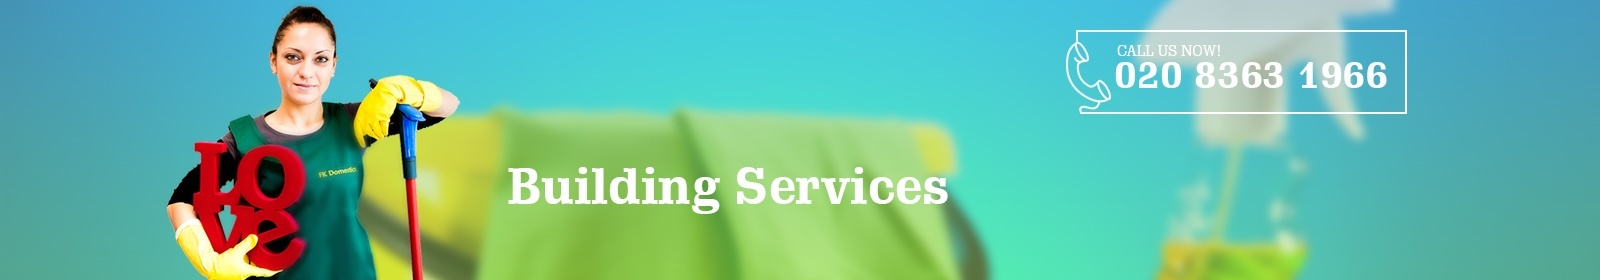 FK Domestics Building Services